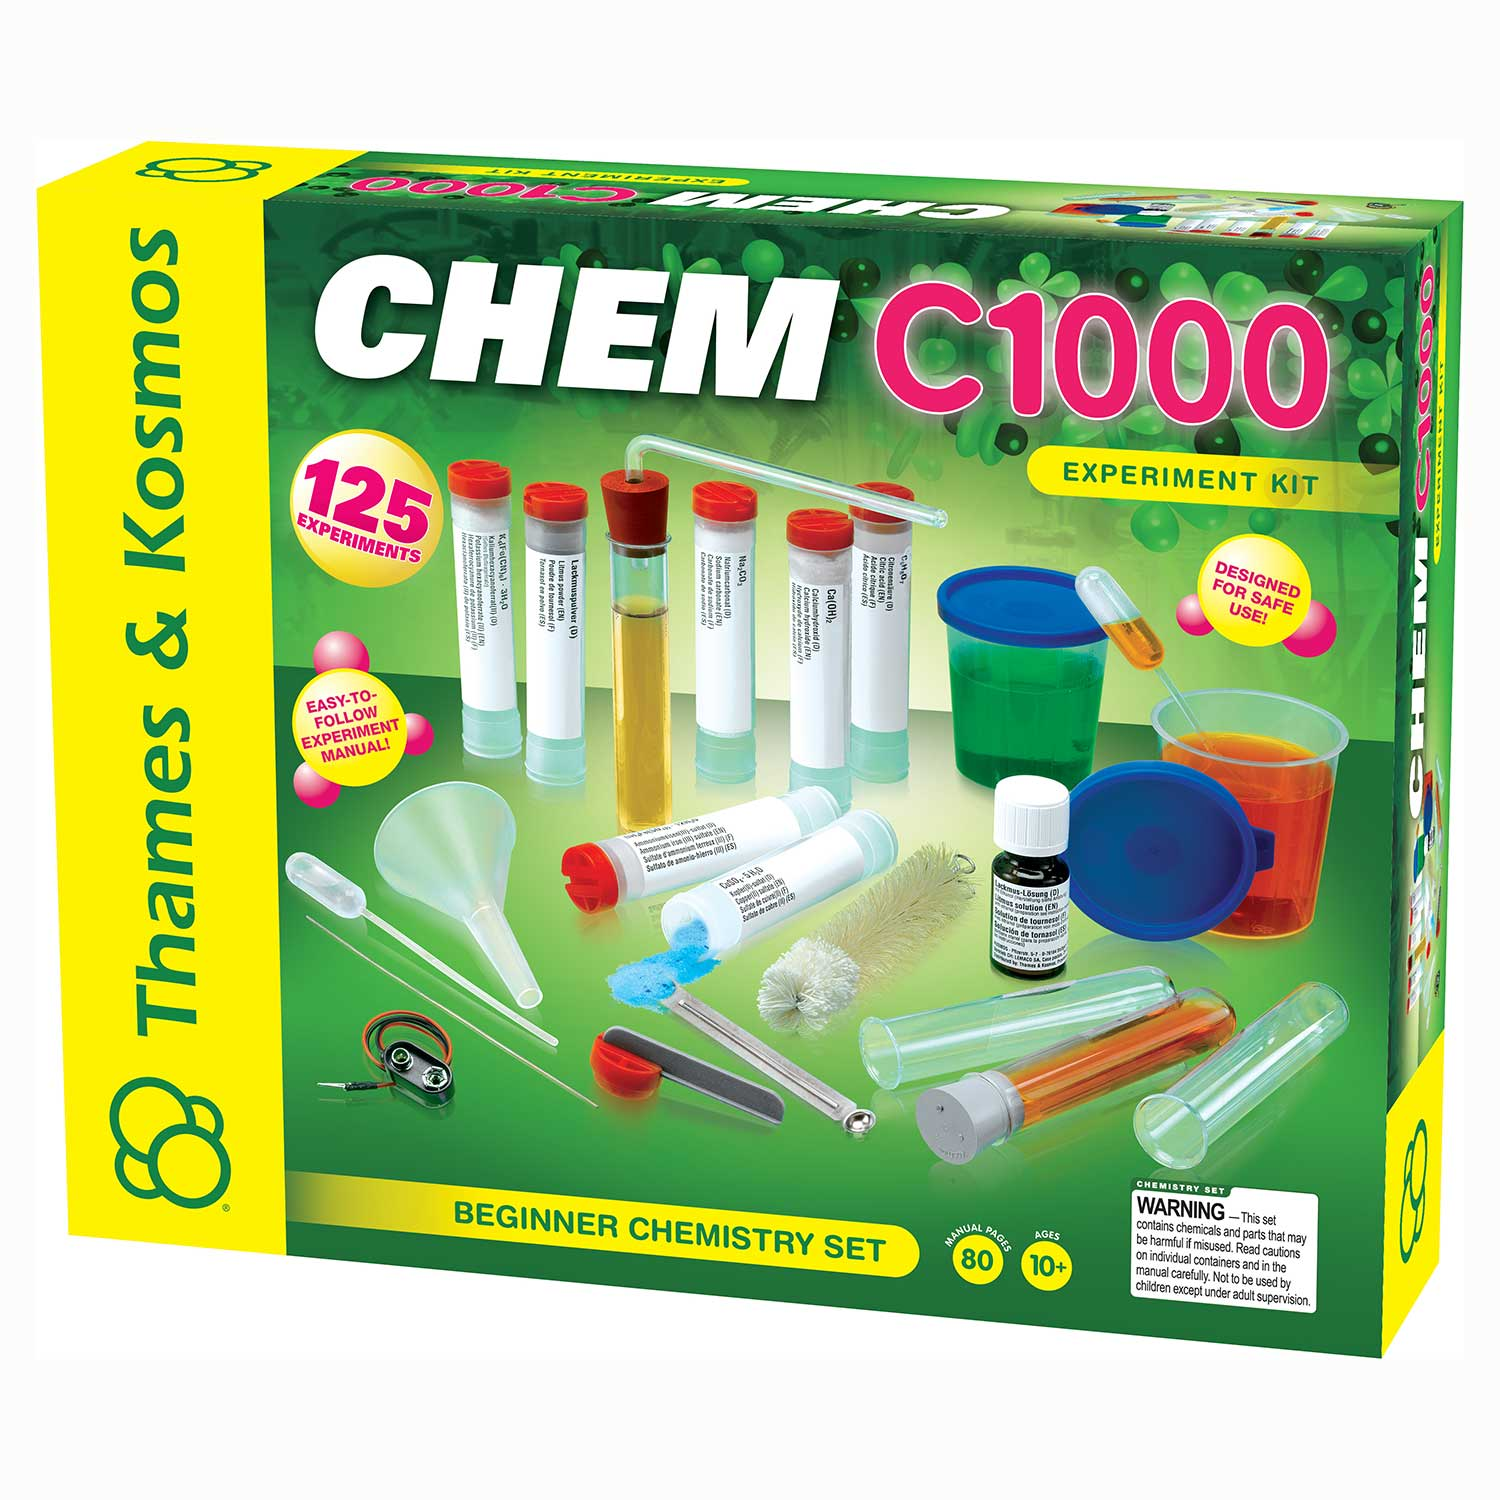 Chemistry Kit - CHEM C1000